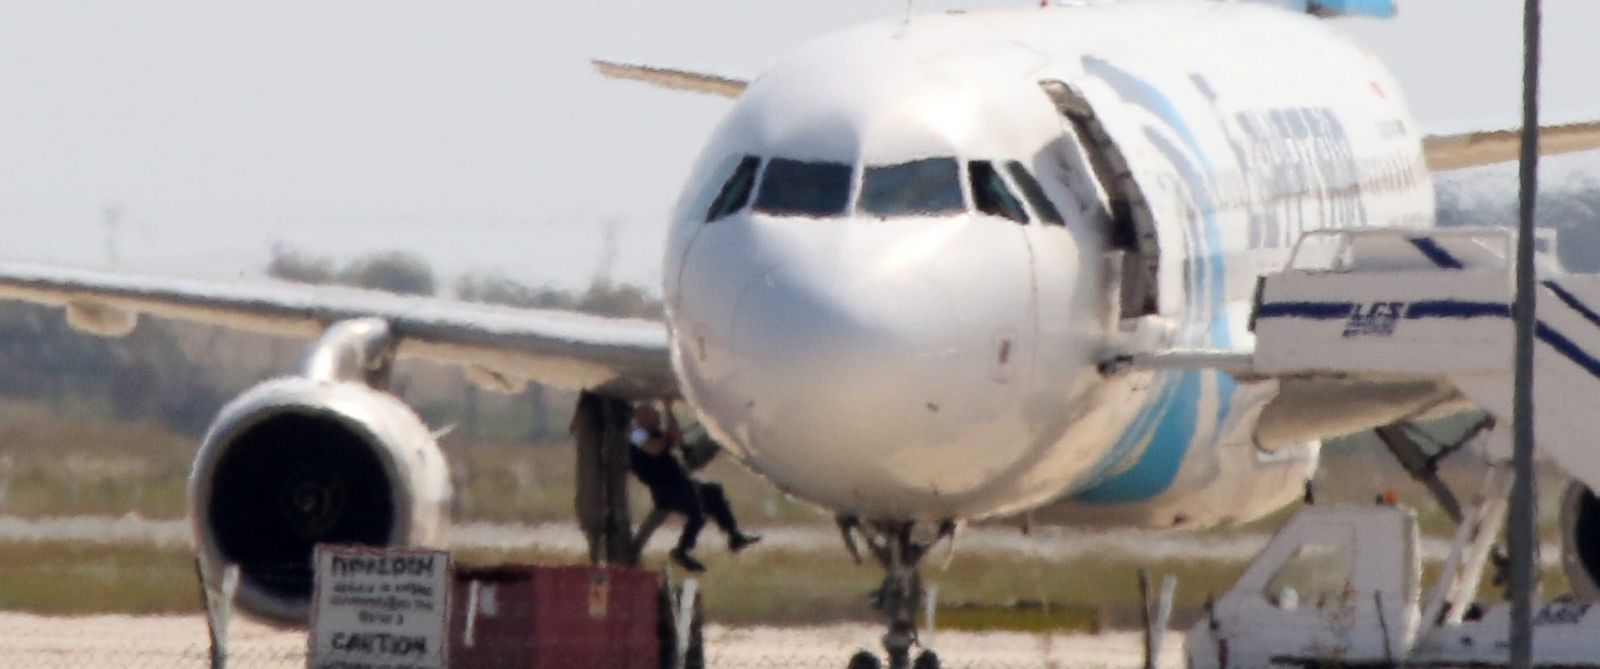 PHOTO: A person is seen here jumping out of the EgyptAir Flight 181 at Larnaca airport in Cyprus, March 29, 2016.